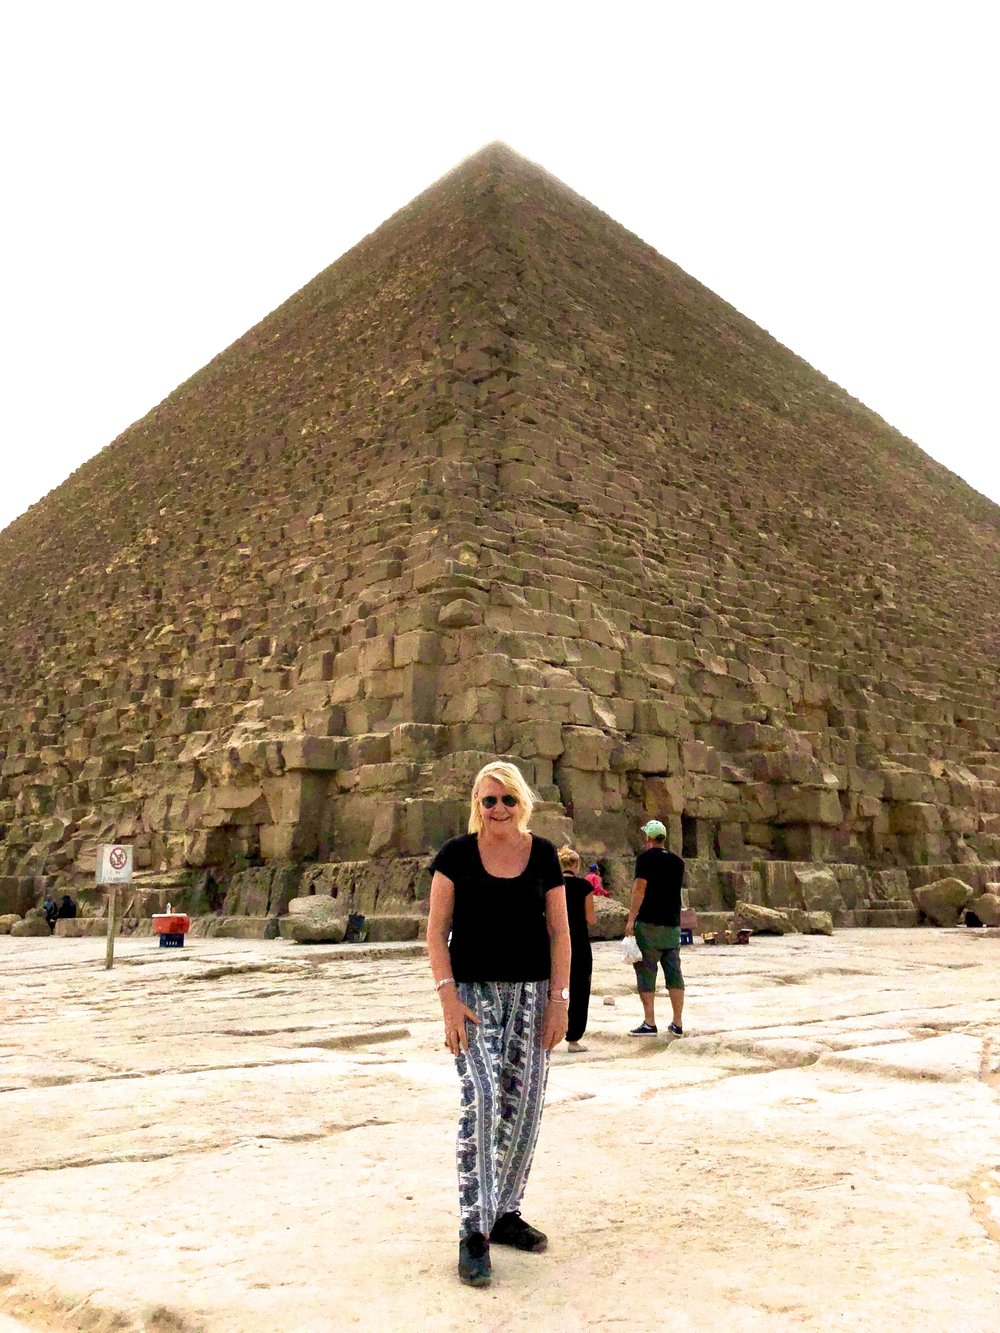 October 2018 in front of the Great Pyramid